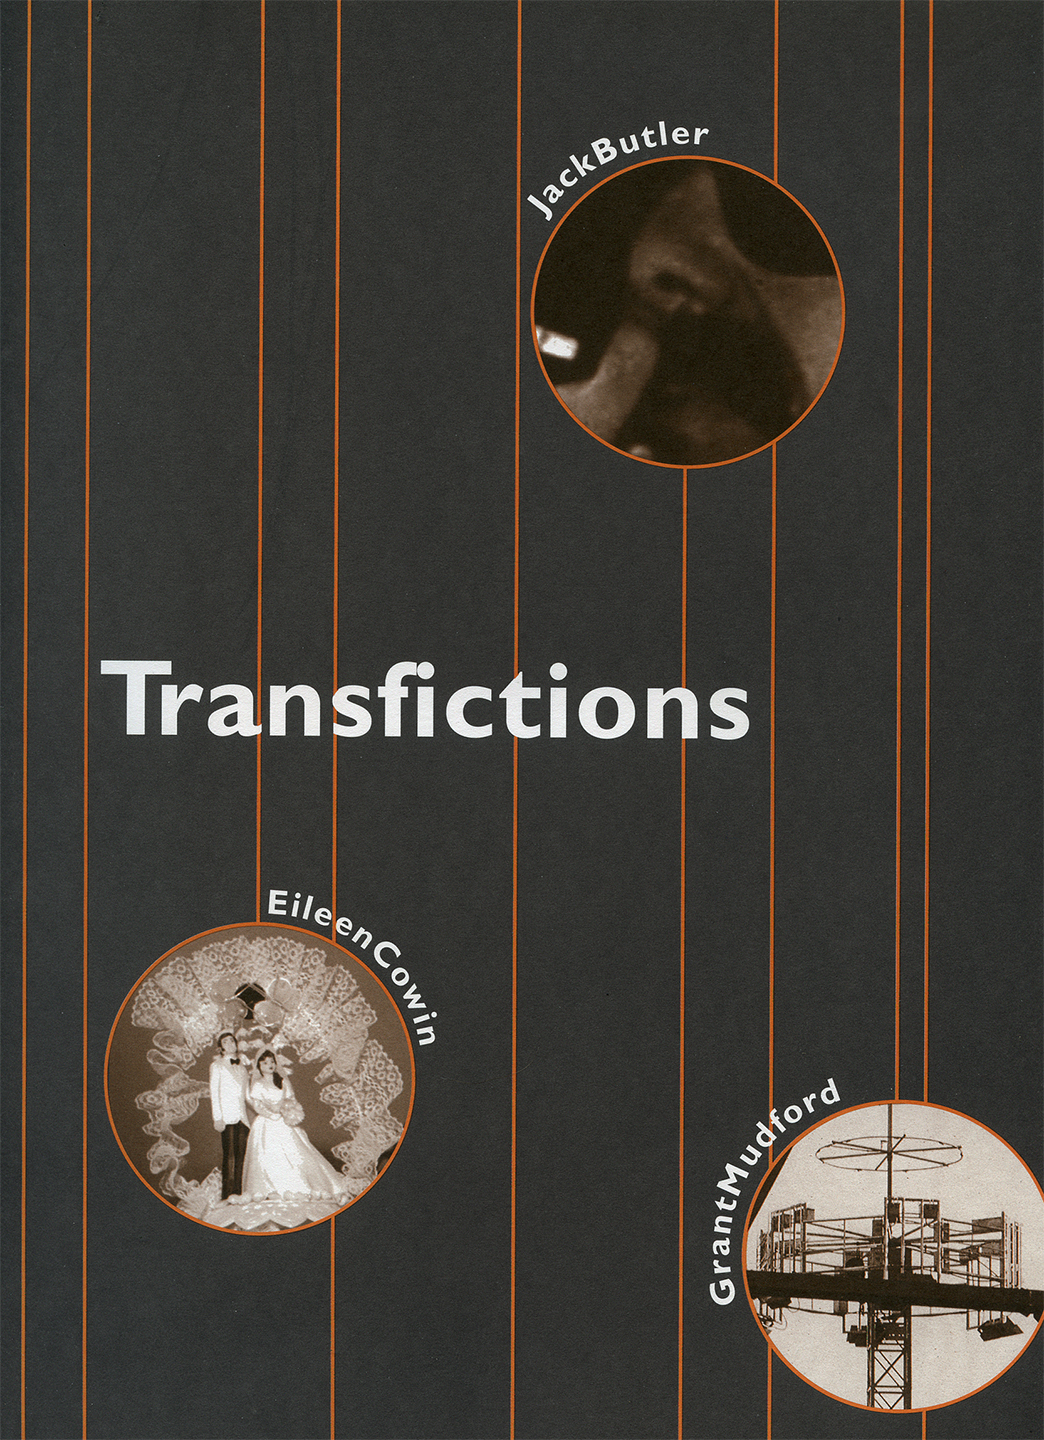 Transfictions USC Fisher Gallery 2004